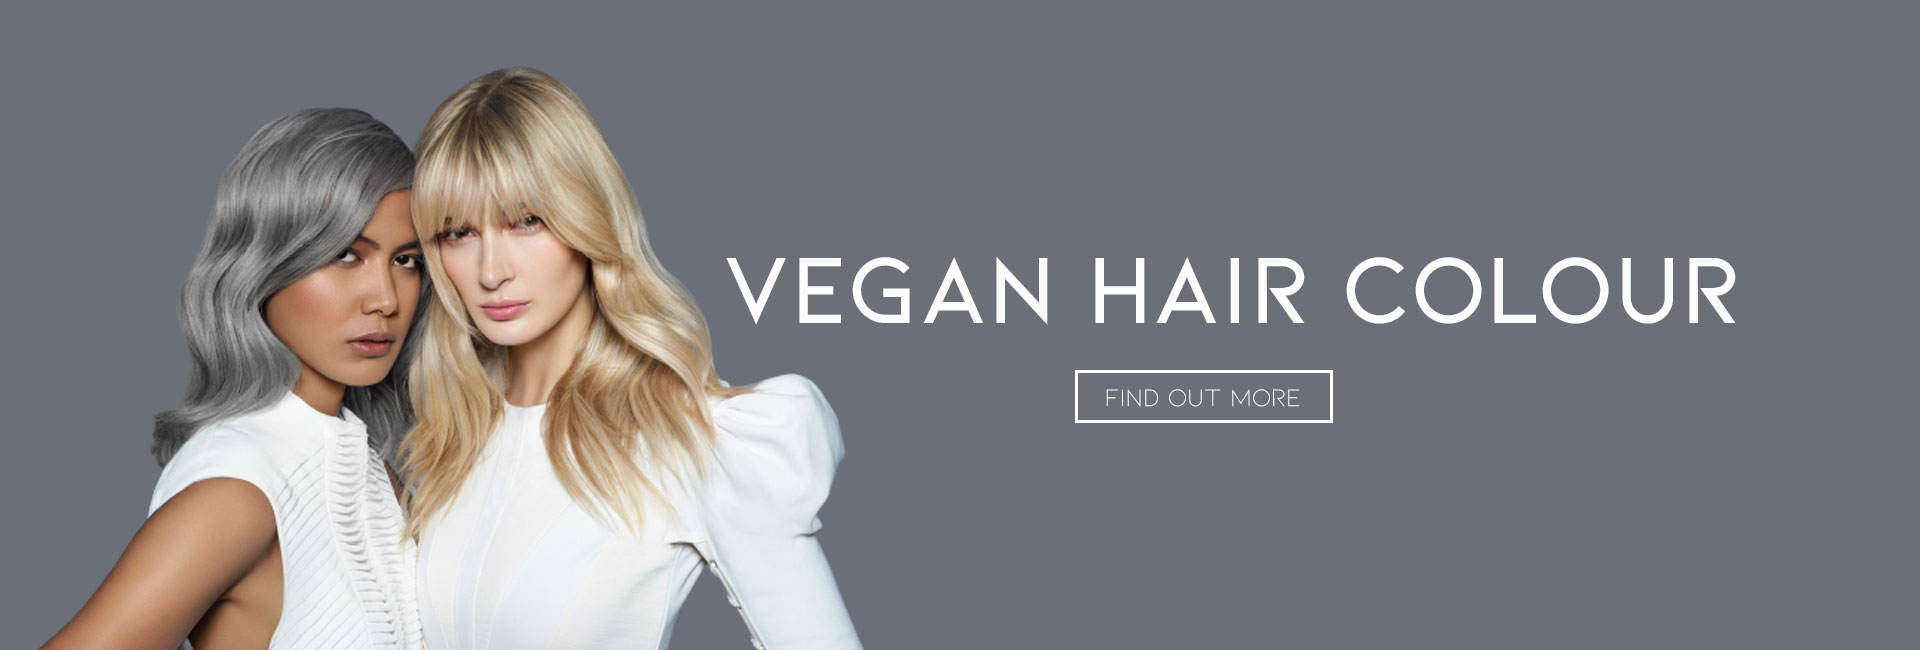 VEGAN HAIR COLOUR at melani richards hair and beauty salon in peterborough